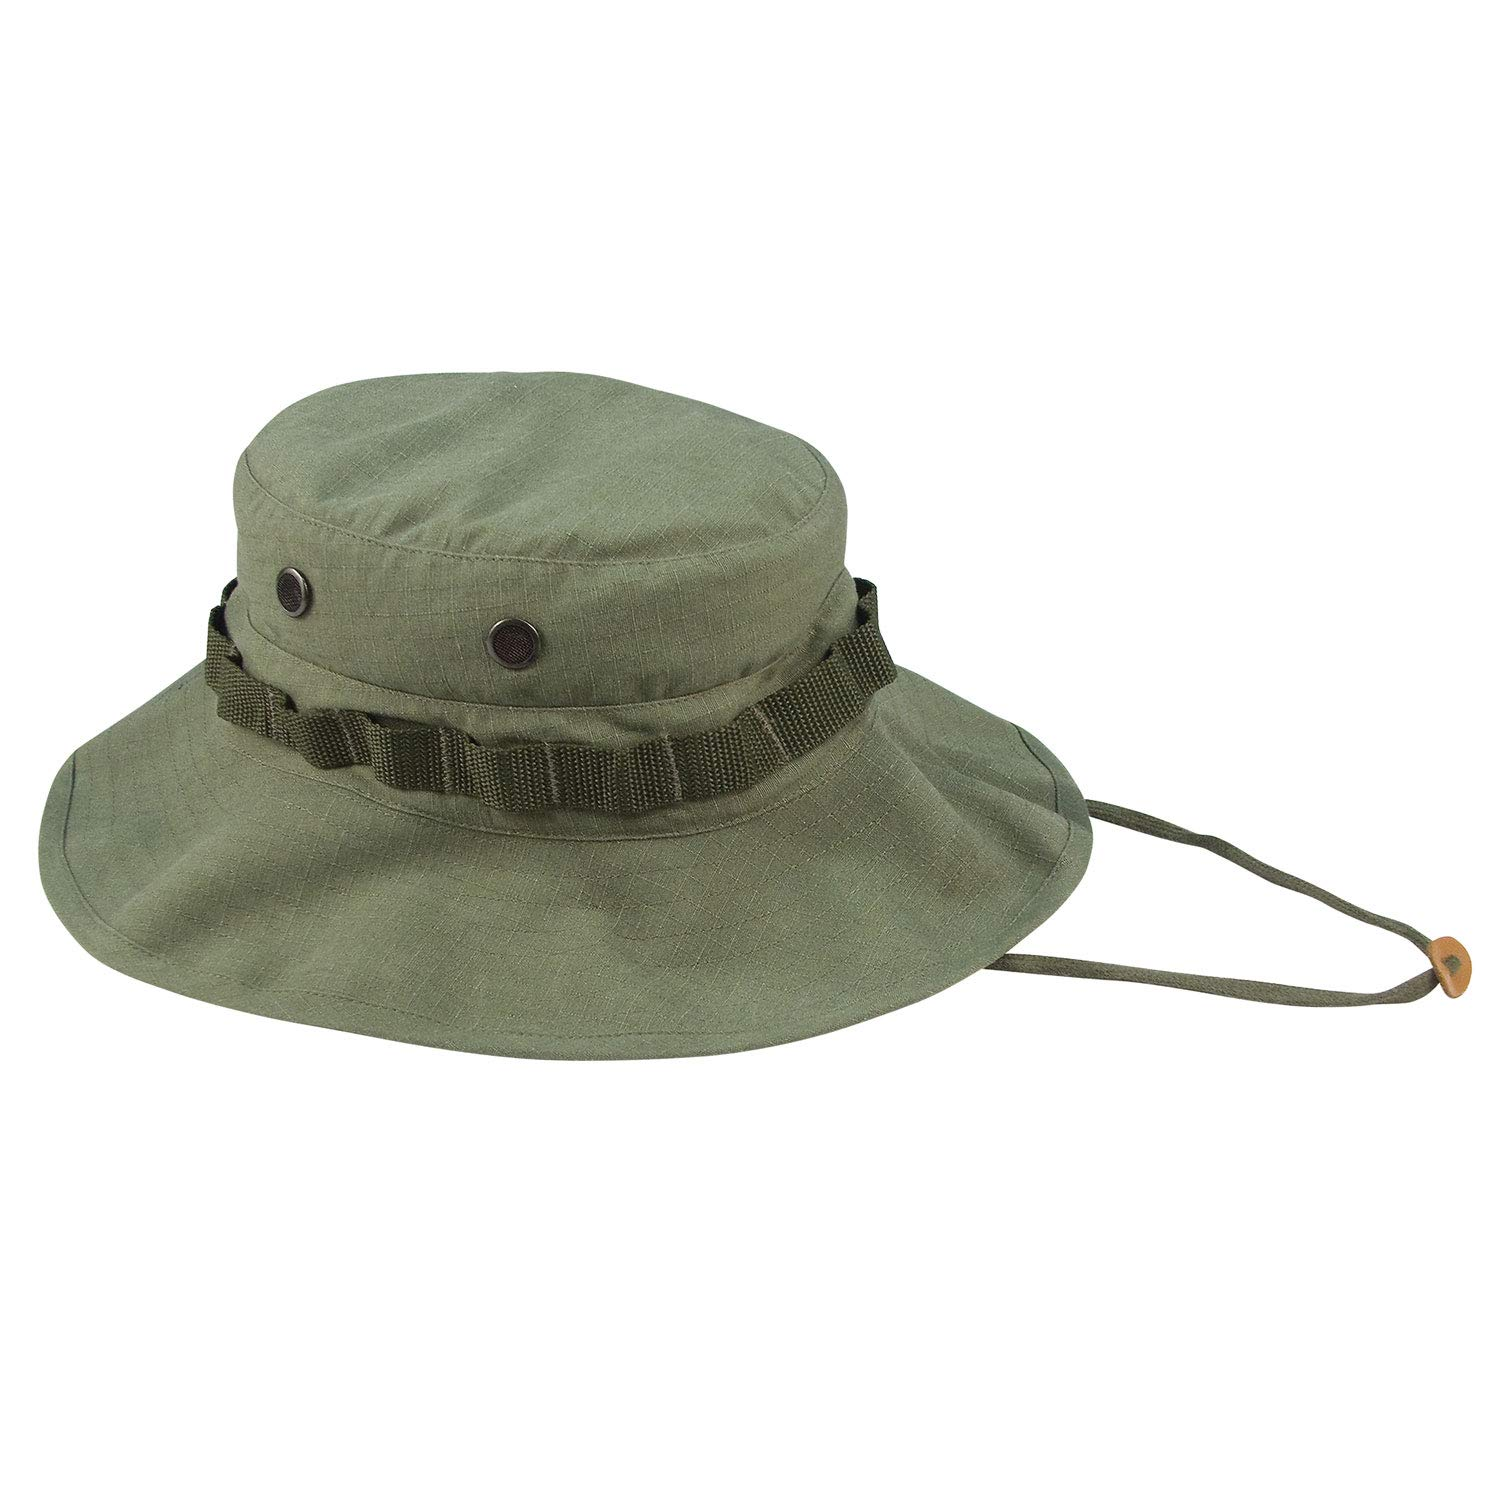 c9039f240b4 Amazon.com  Rothco Vintage Vietnam Style Boonie Hat  Sports   Outdoors